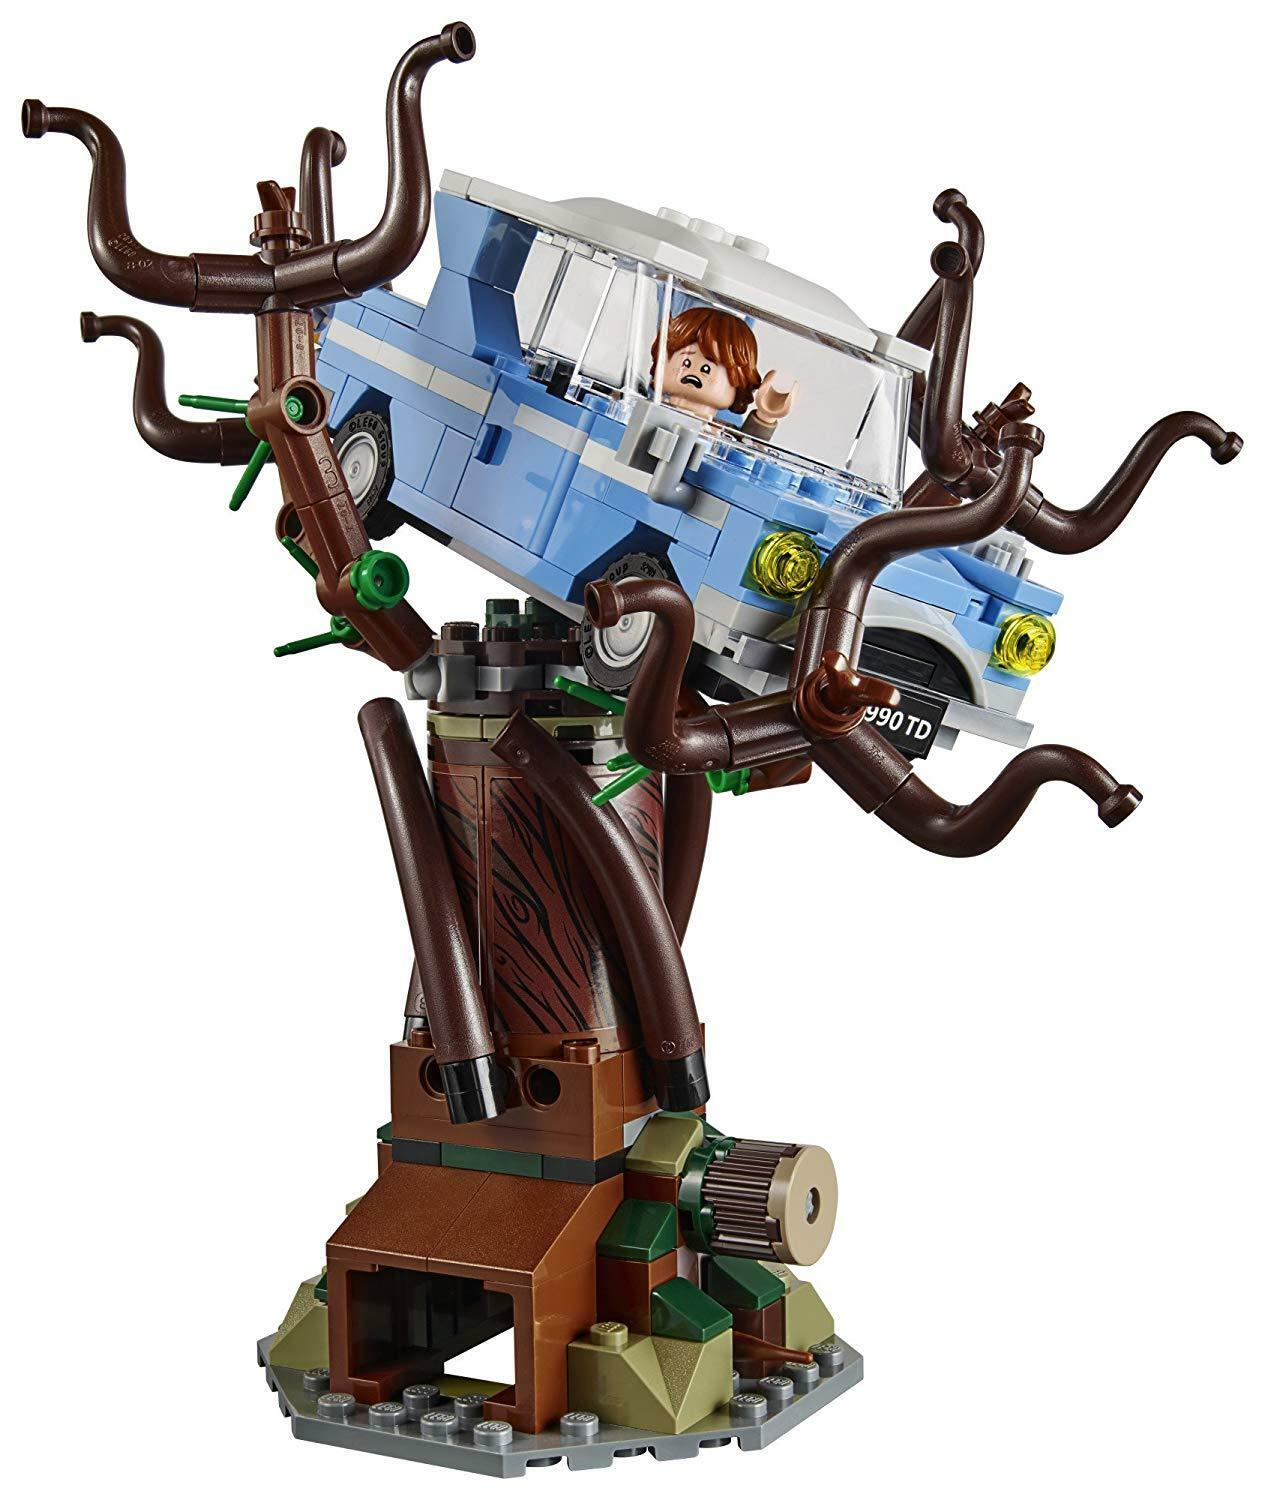 NEW Sealed  Lego 75953 Harry Potter Hogwarts Whomping Whomping Whomping Willow Building 17d46a